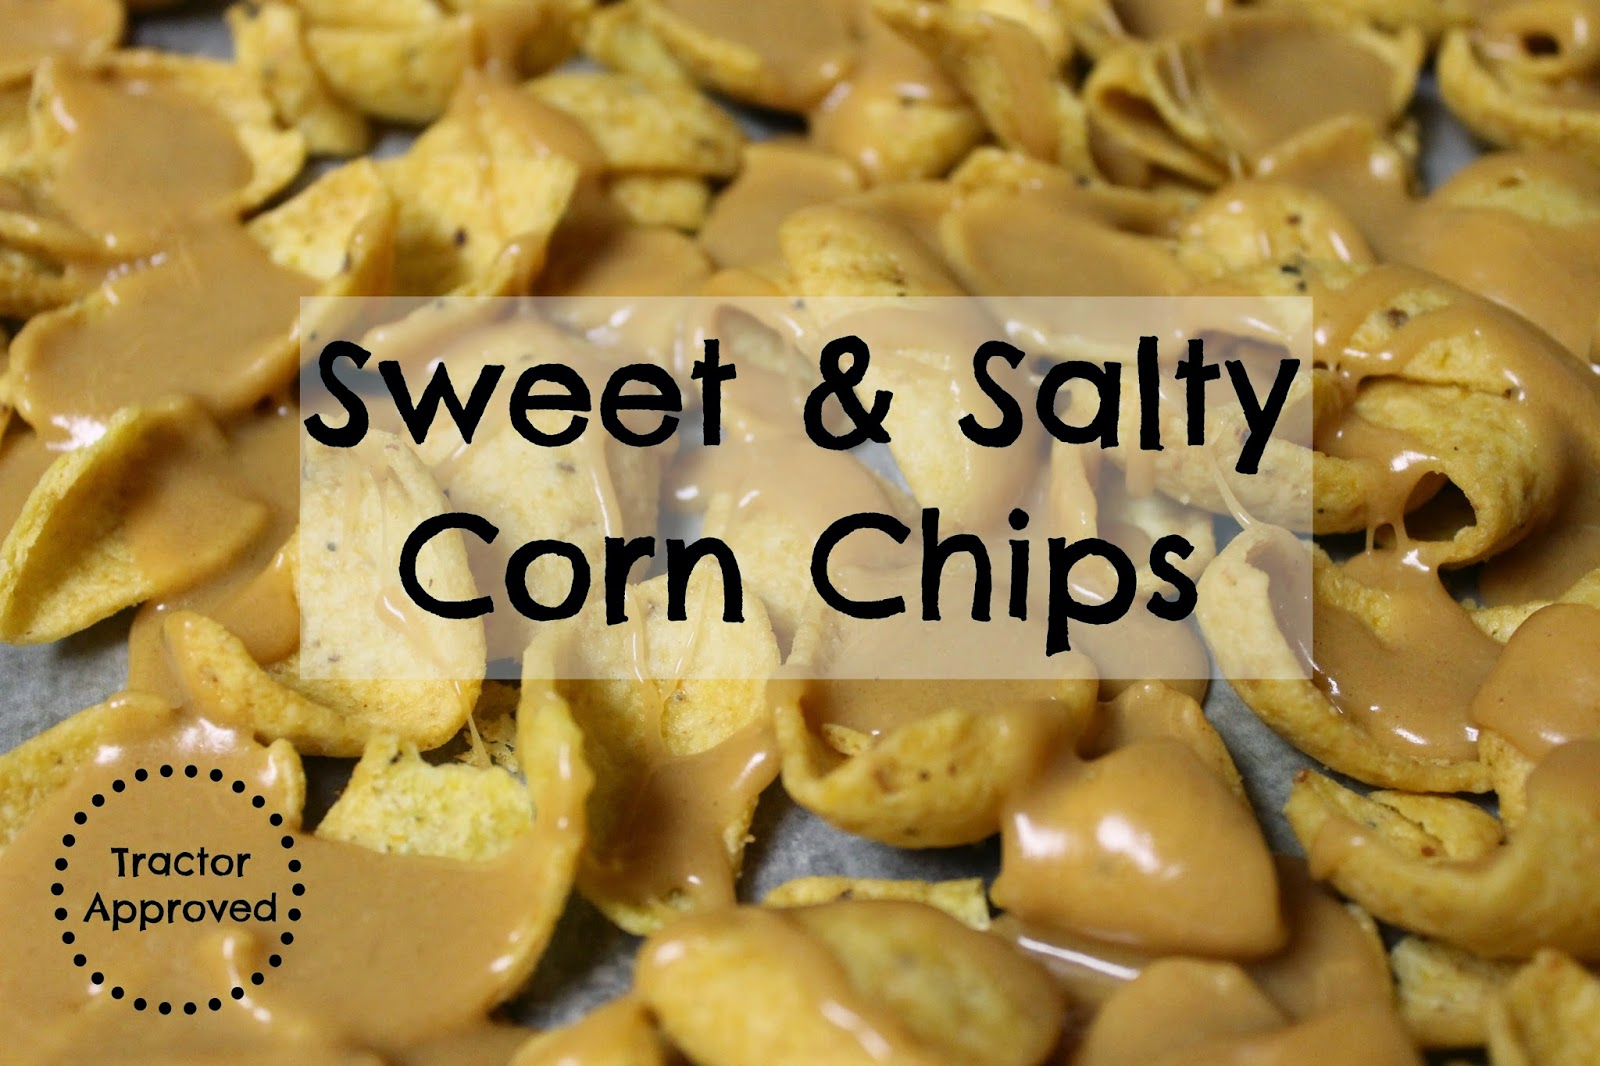 Sweet & Salty Corn Chips snack recipe